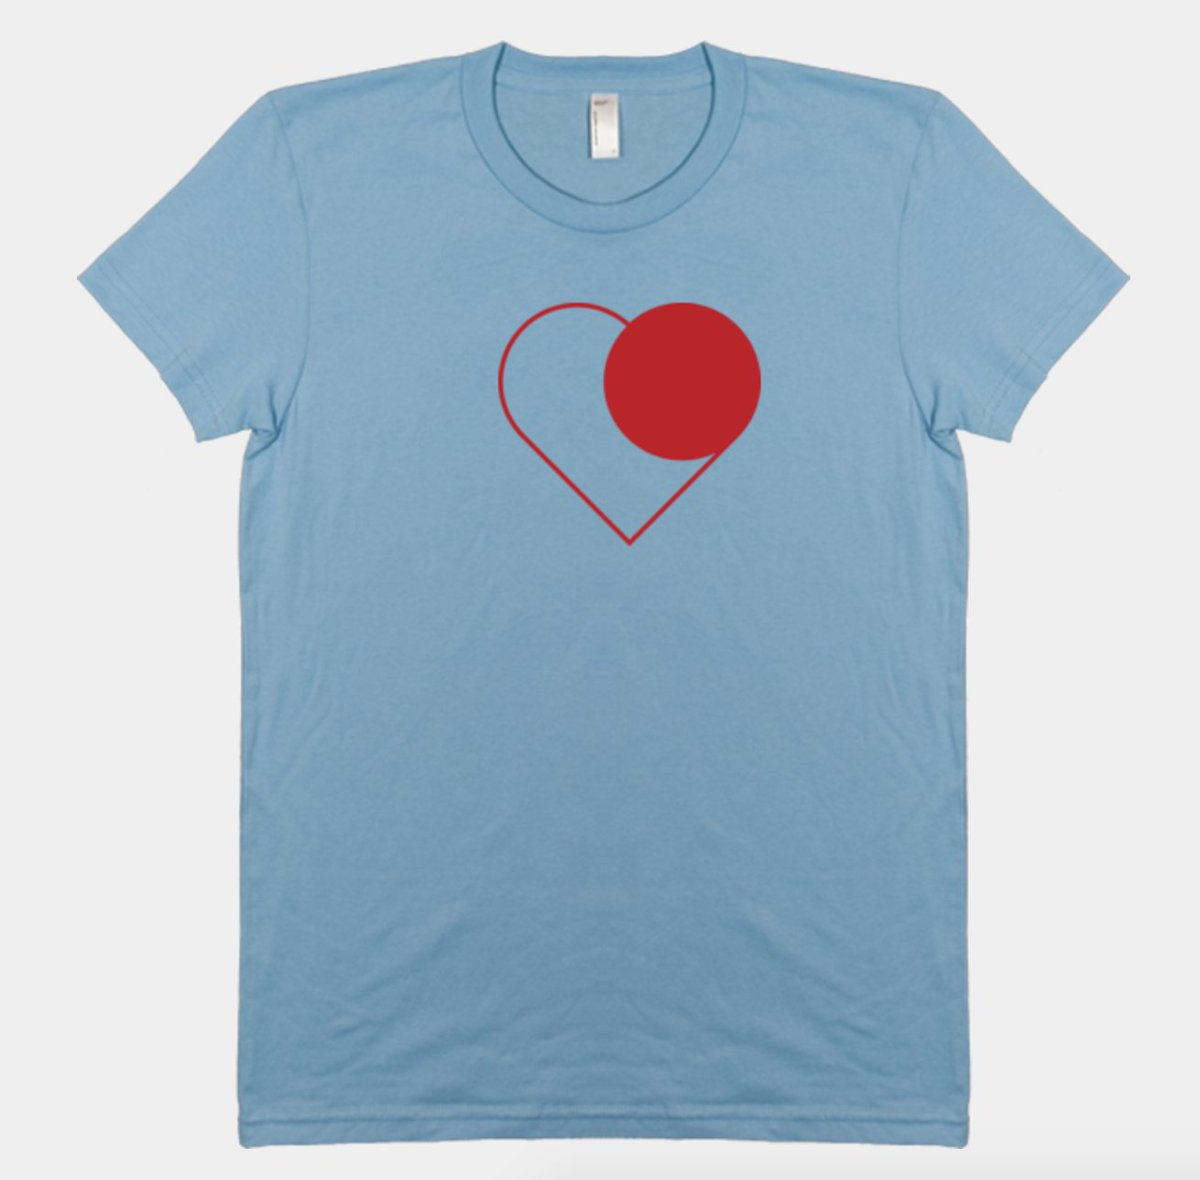 We've now got this heart shirt available in a variety of new colors... https://t.co/luKtYv0Vni https://t.co/oSaTHRxUIs